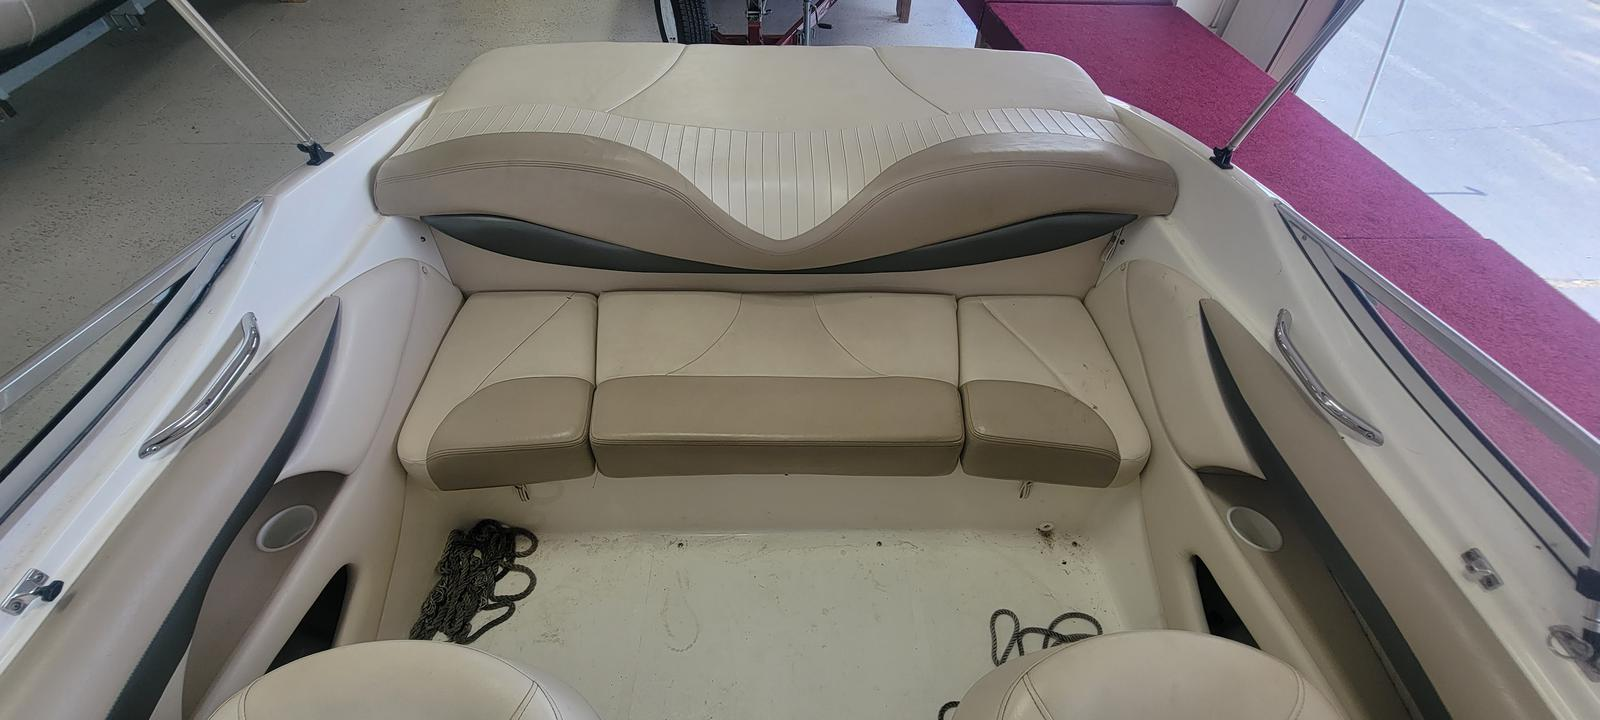 2006 Glastron boat for sale, model of the boat is GX 185 & Image # 4 of 7